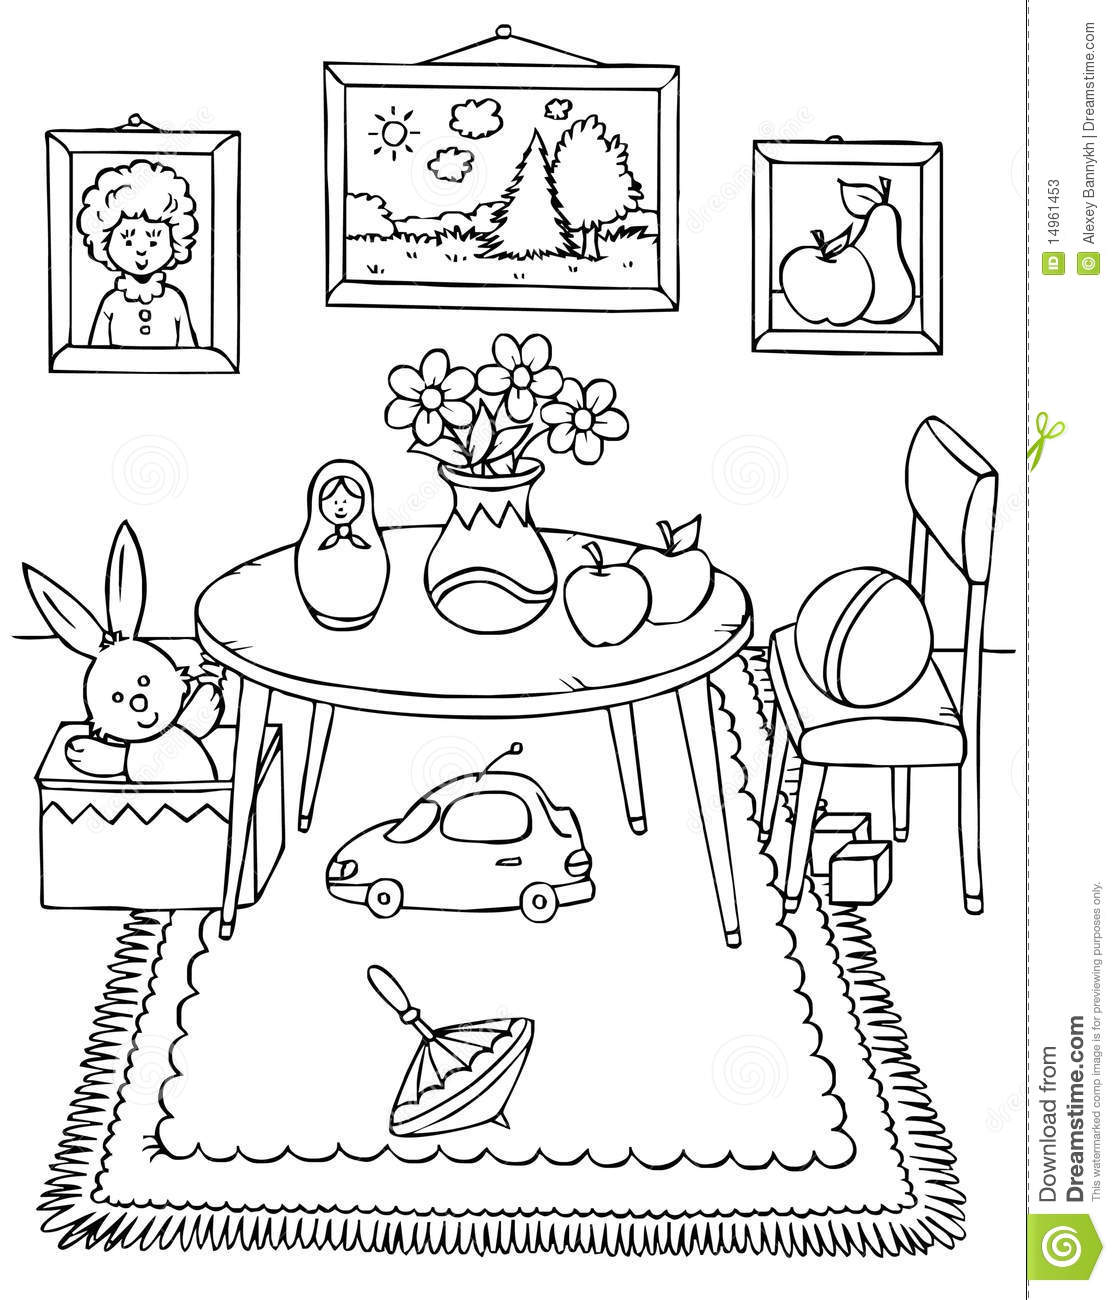 Coloring pages furniture - Coloring Page Living Room Img 25997 Edupicscom